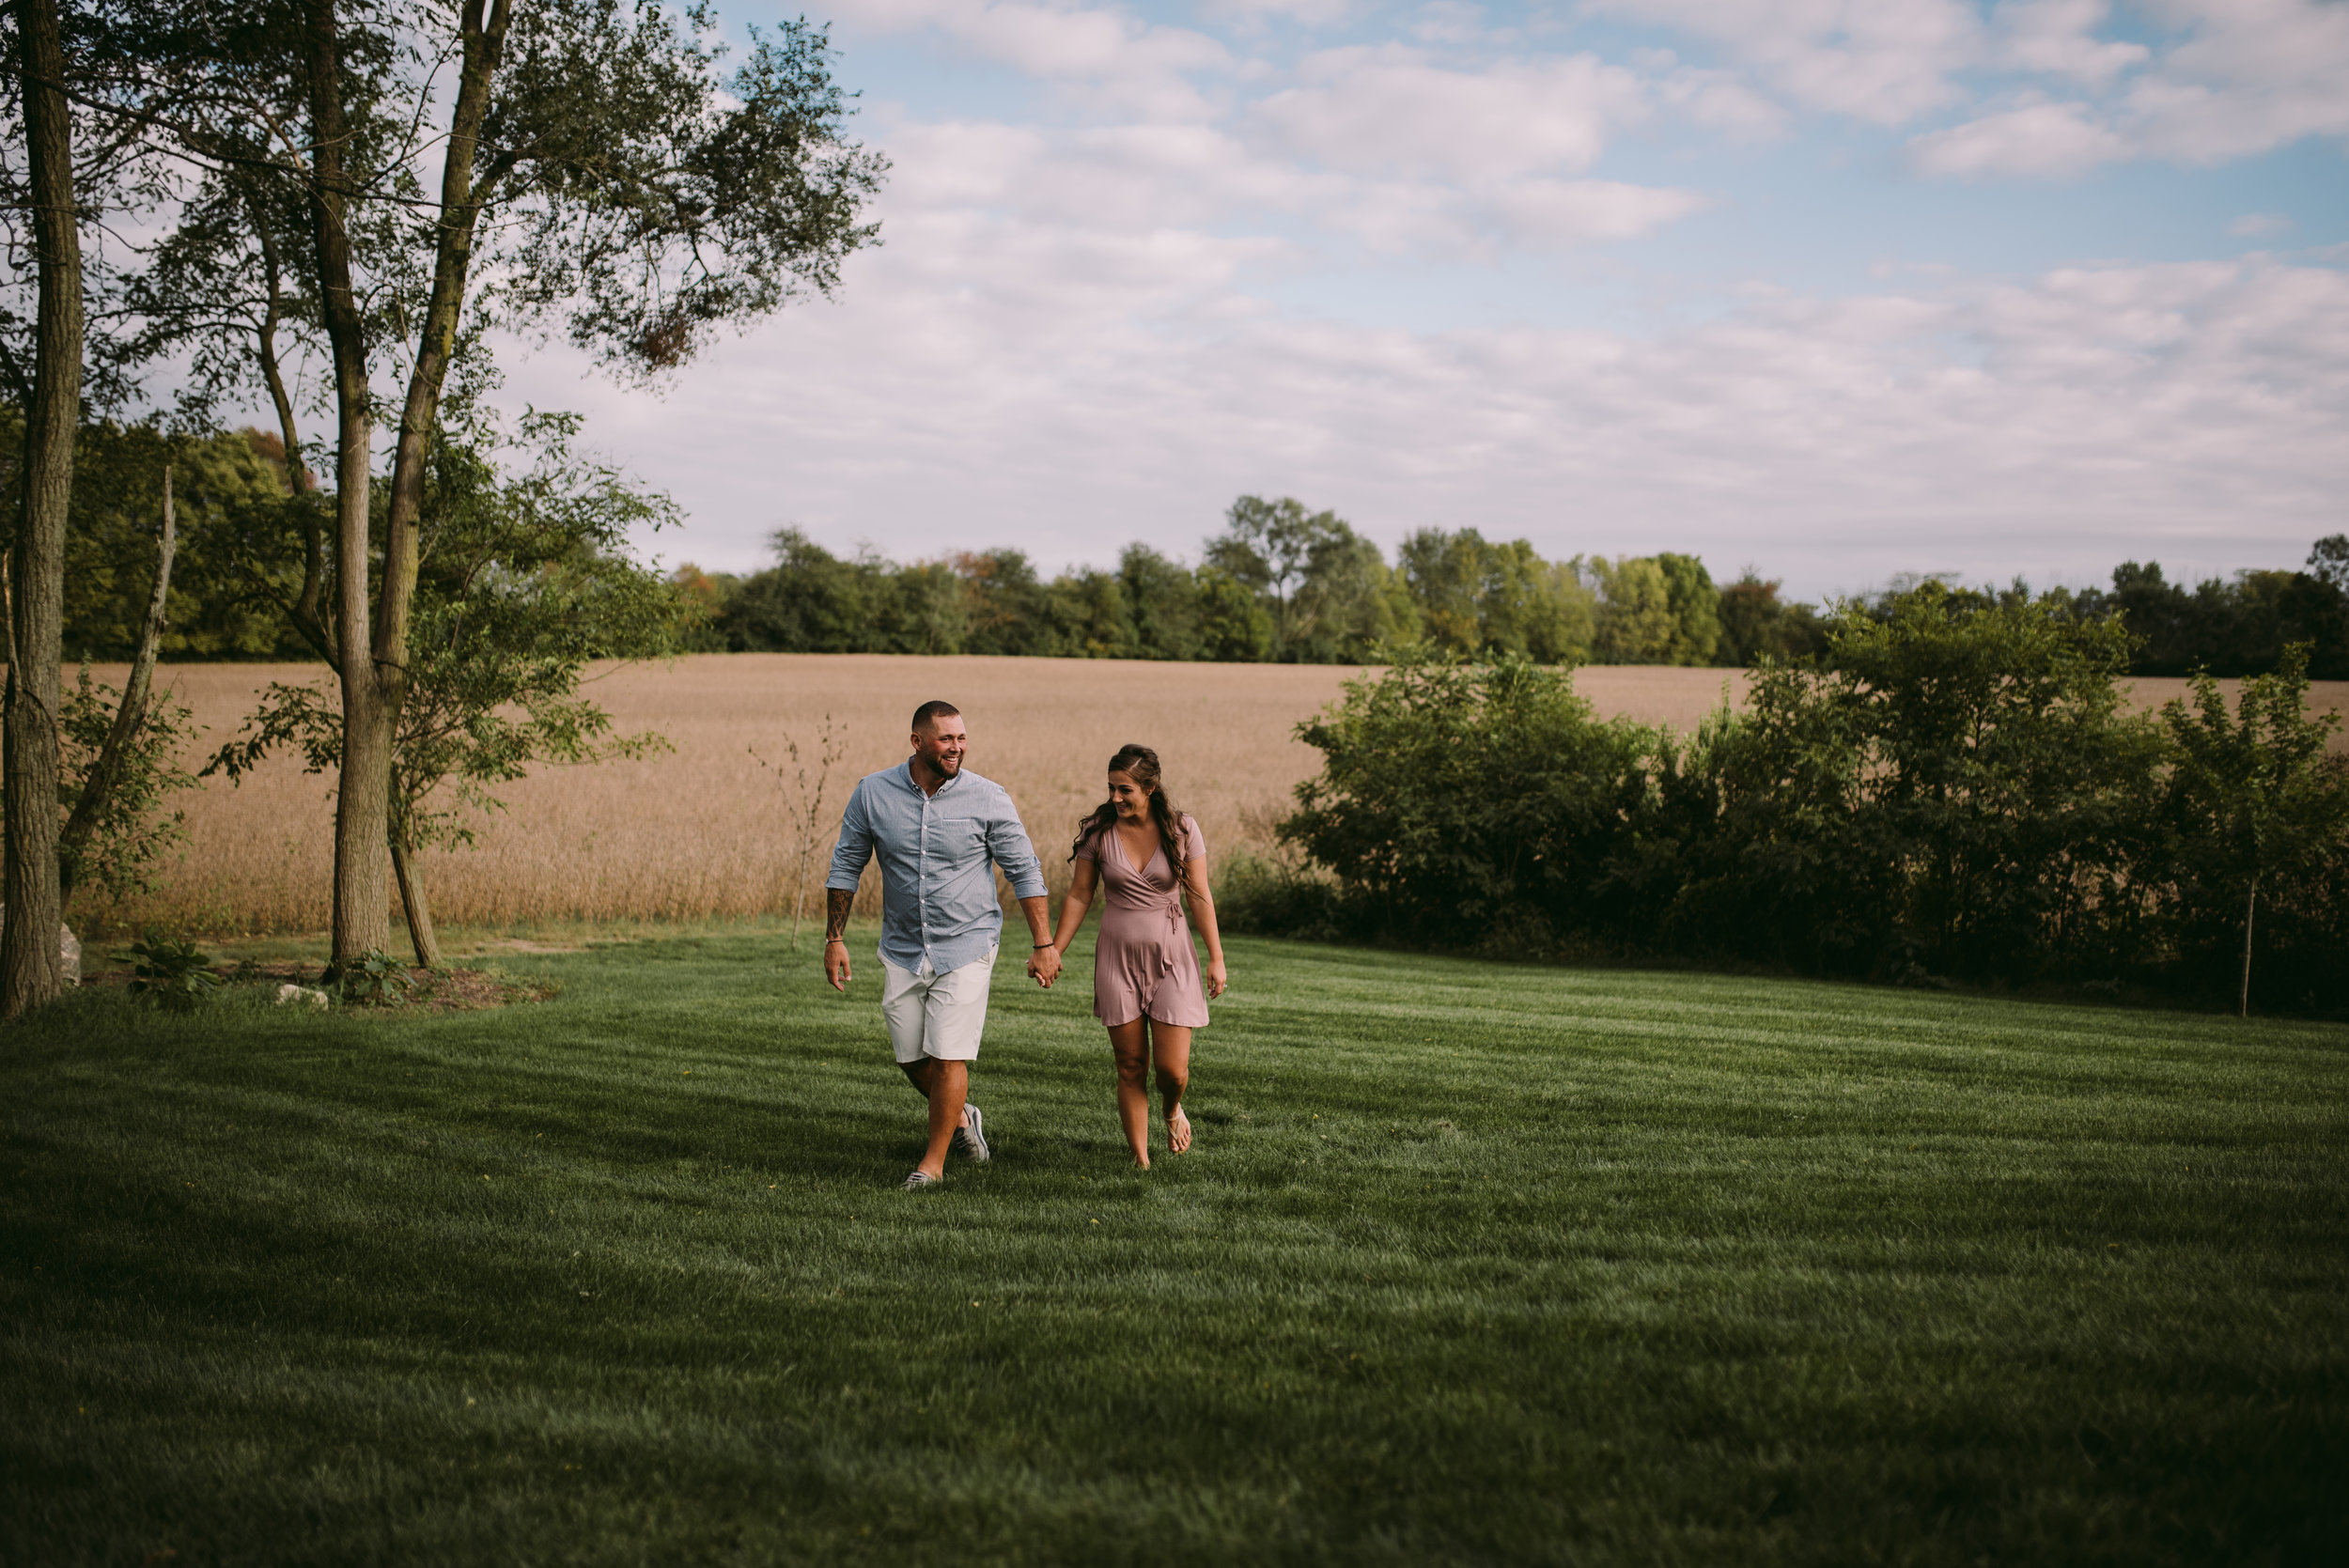 Brooke&Blake_EngagementSession_October2018_SamanthaRosePhotography_067.JPG